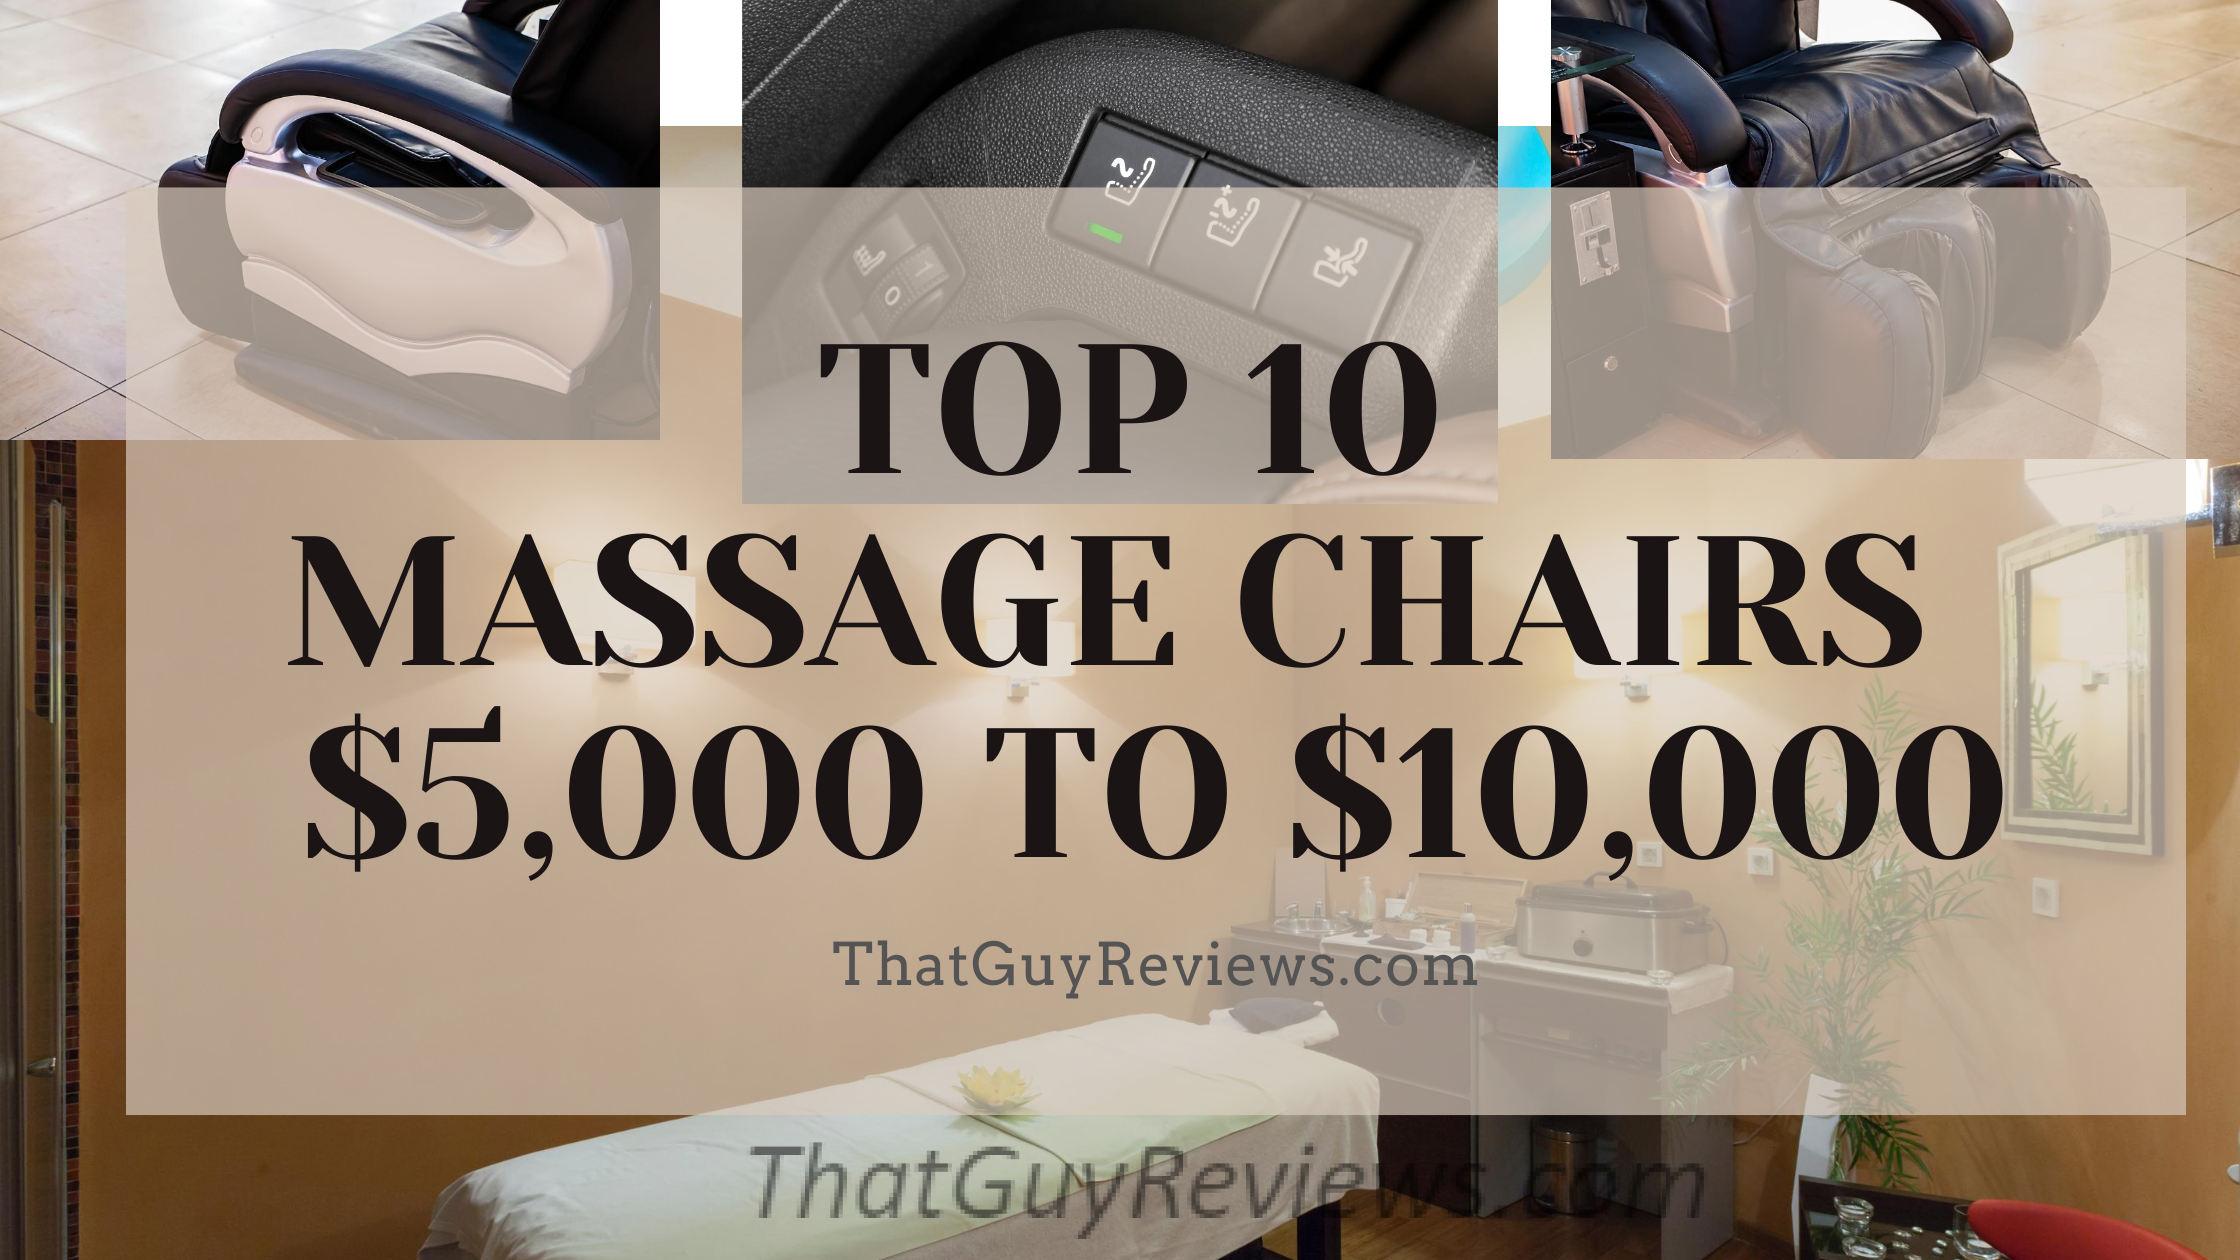 Best Massage Chairs $5,000 to $10,000 in 2020